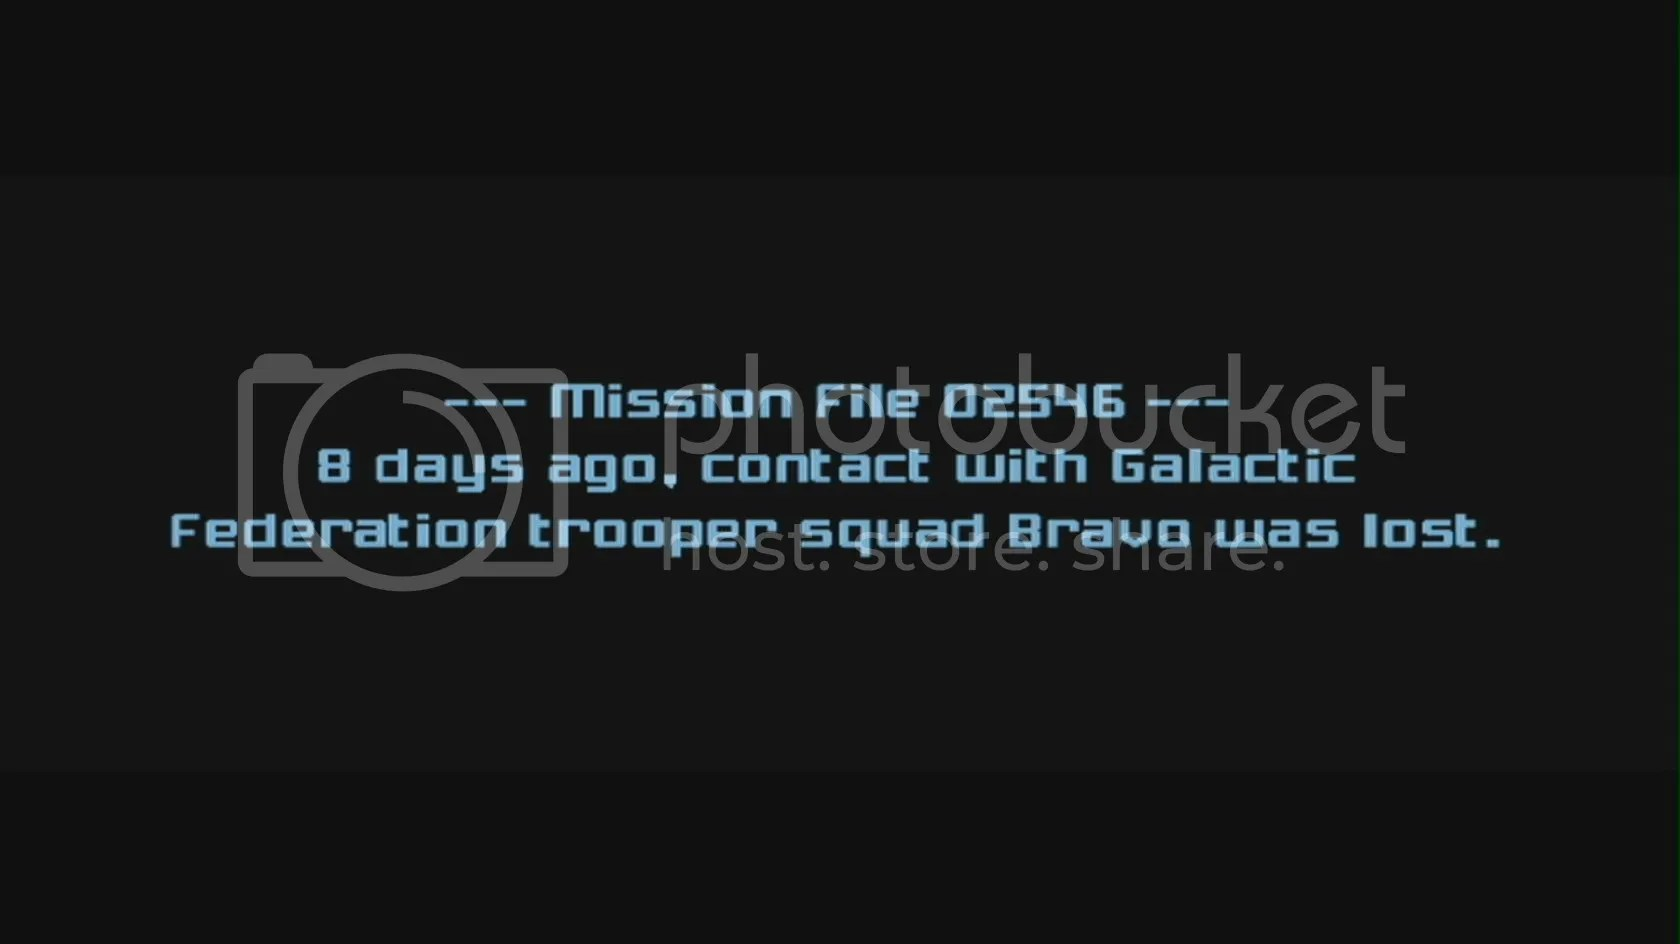 --- Missions File 02546 ---  8 days ago, contact with Galactic Federation trooper squad Bravo was lost.